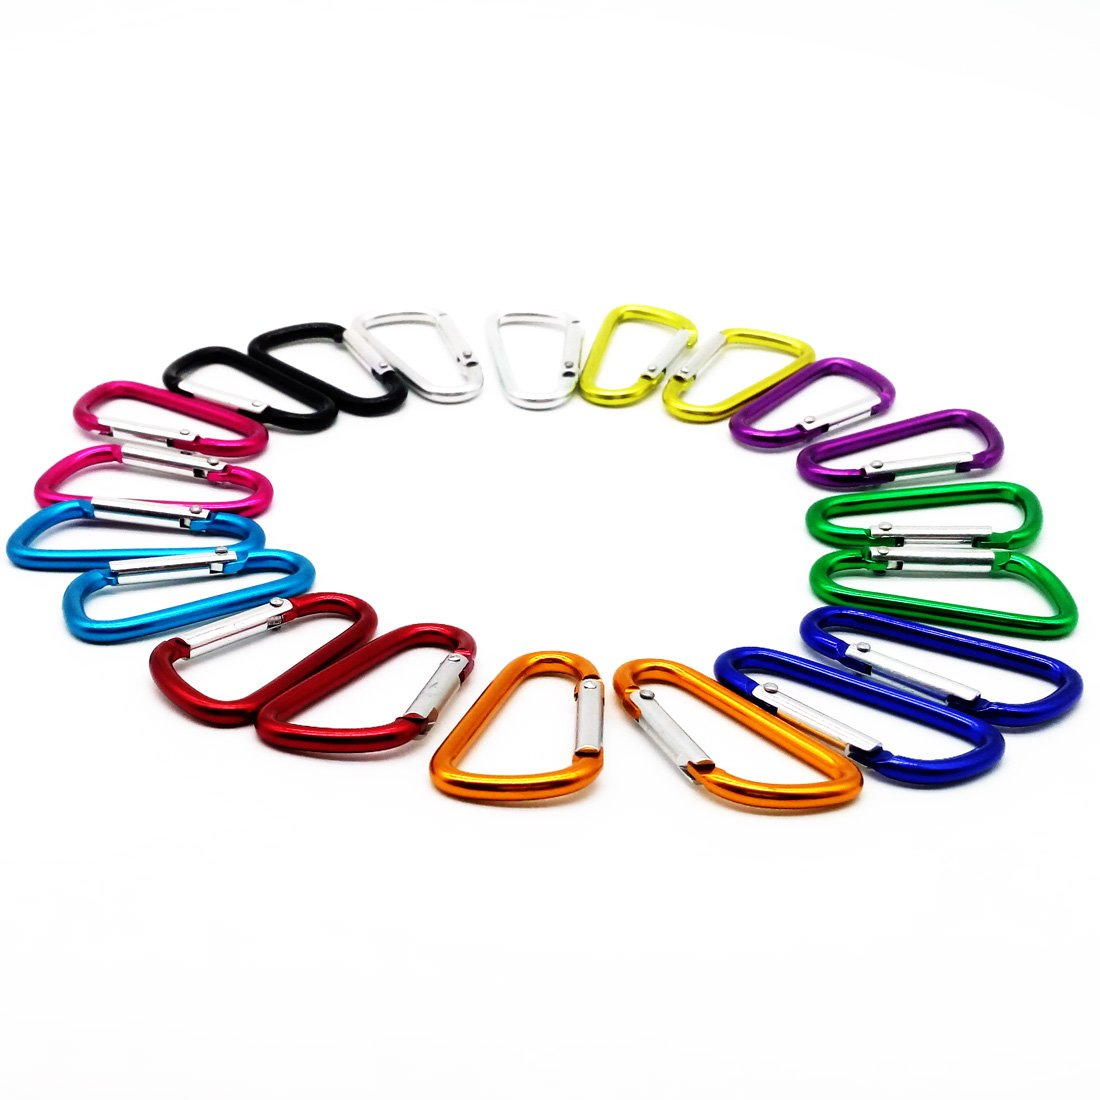 20PCS 2.0/5CM Aluminum D Ring Carabiner Clip,Lightweight Durable Small Caribeaner Keychain Hook For Home,Outdoor,Camping,Rv,Hiking,Travling,Fishing and Keychain Fishing and Keychain HDSUDCG Style #1